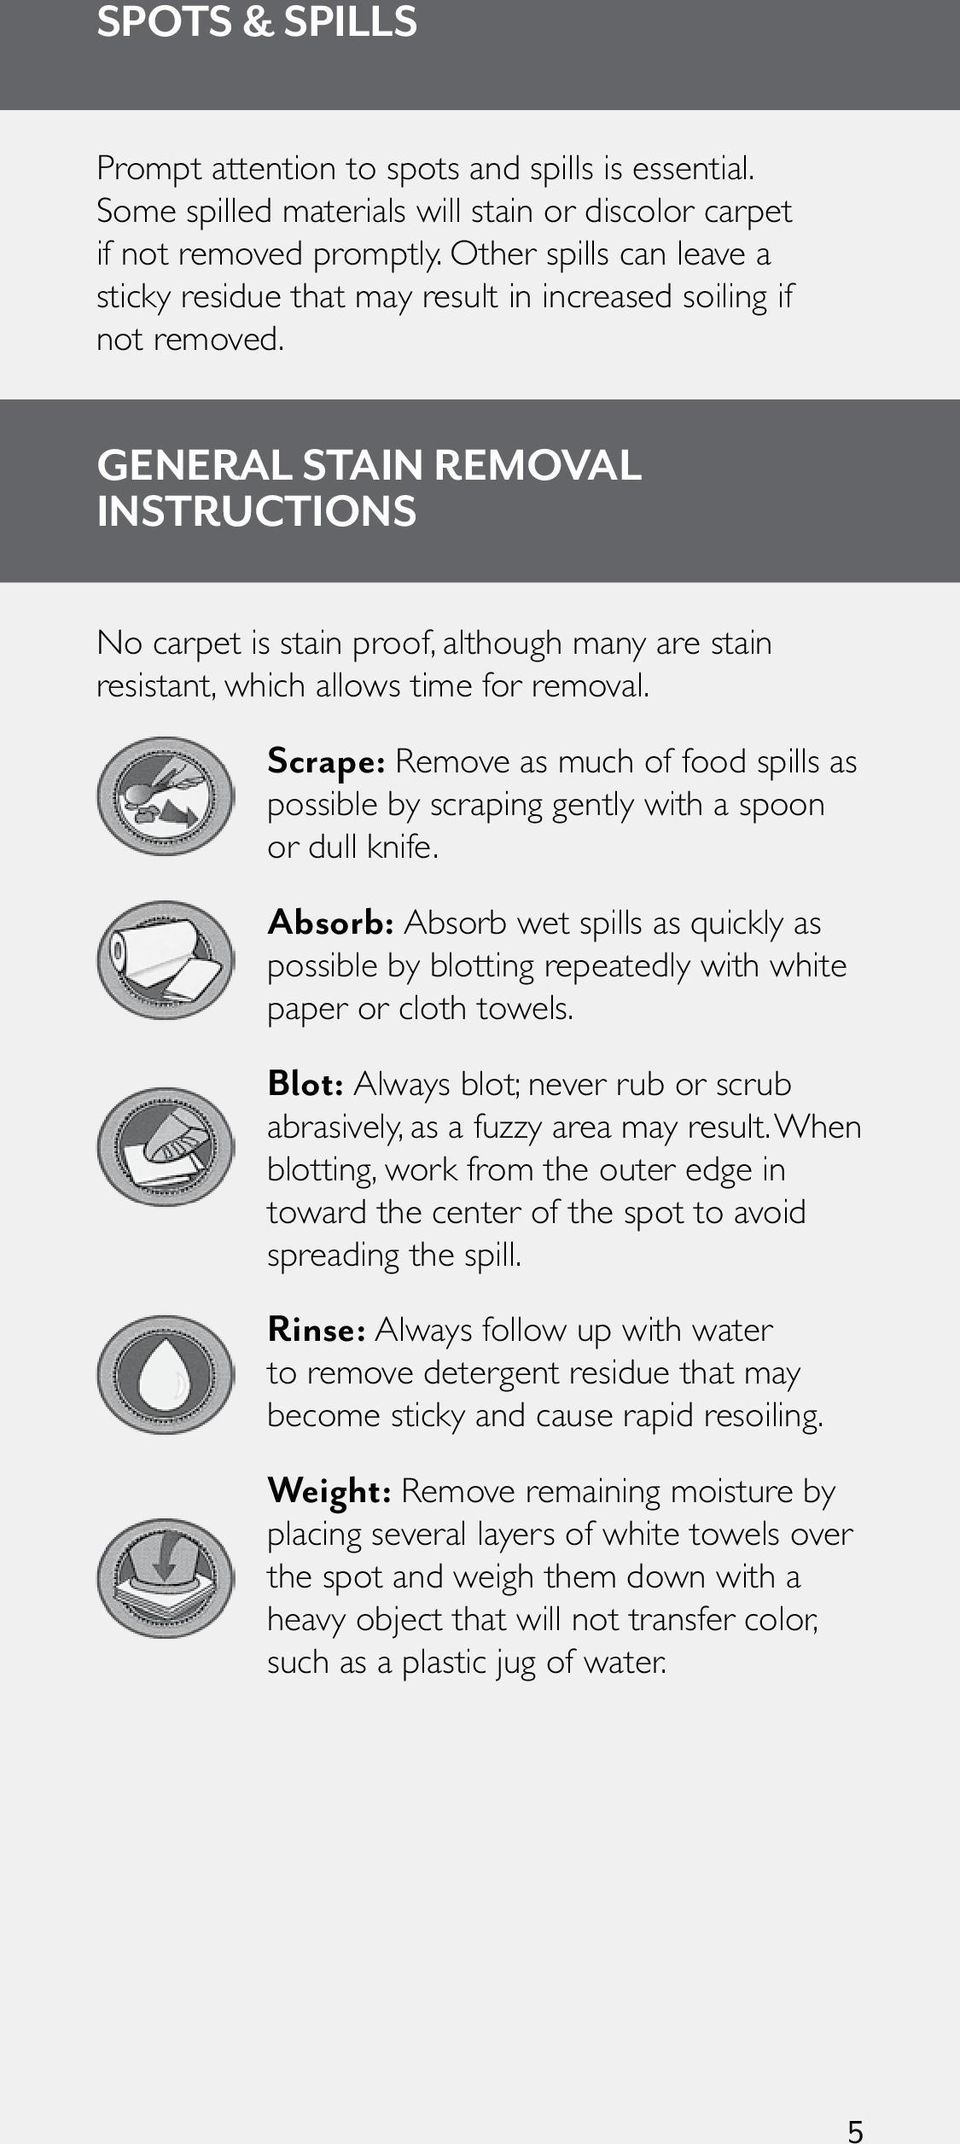 GENERAL STAIN REMOVAL INSTRUCTIONS No carpet is stain proof, although many are stain resistant, which allows time for removal.